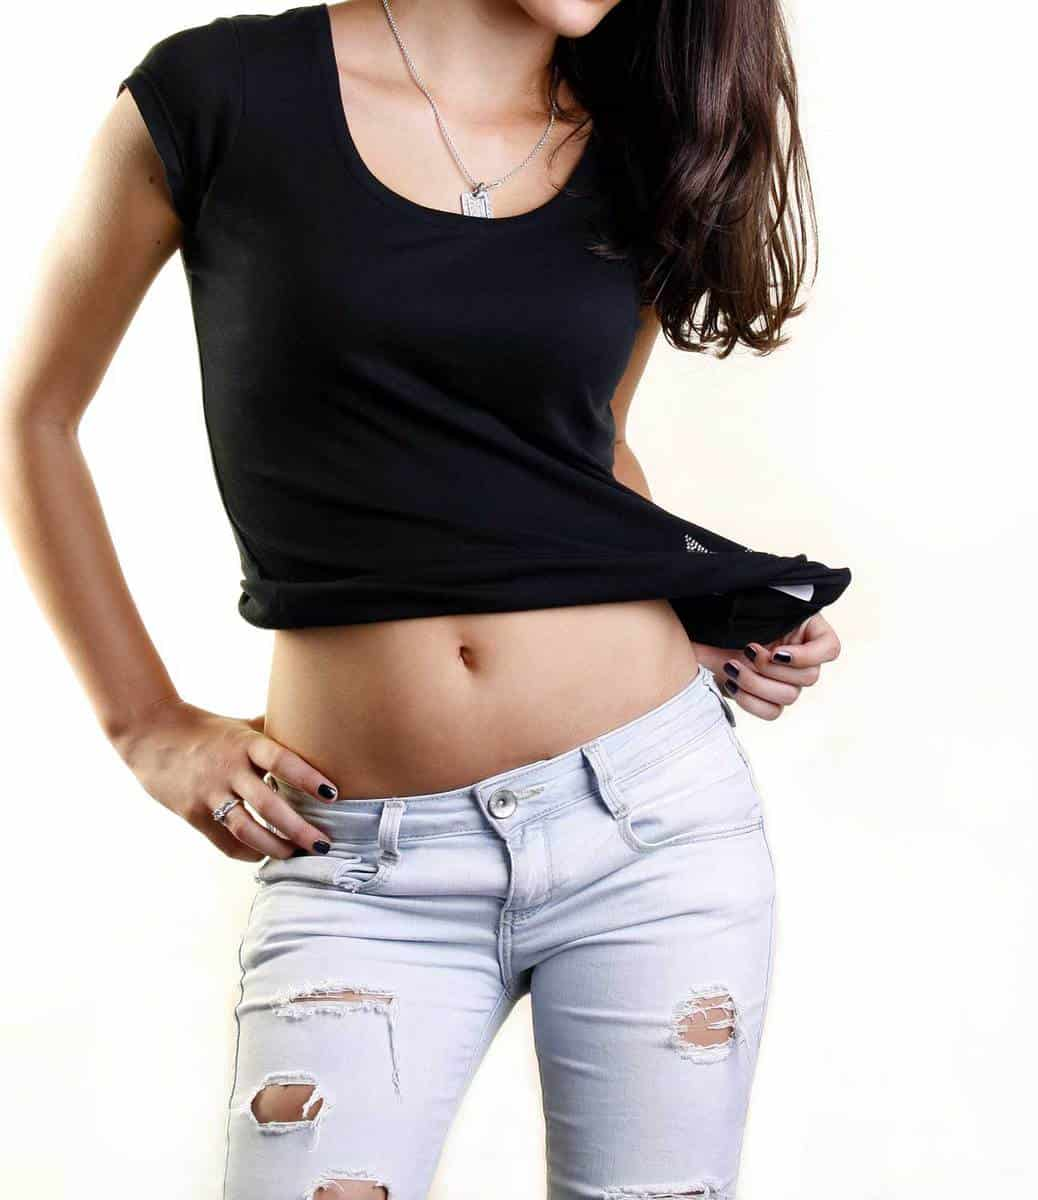 Beautiful female model in jeans and black shirt isolated on white background